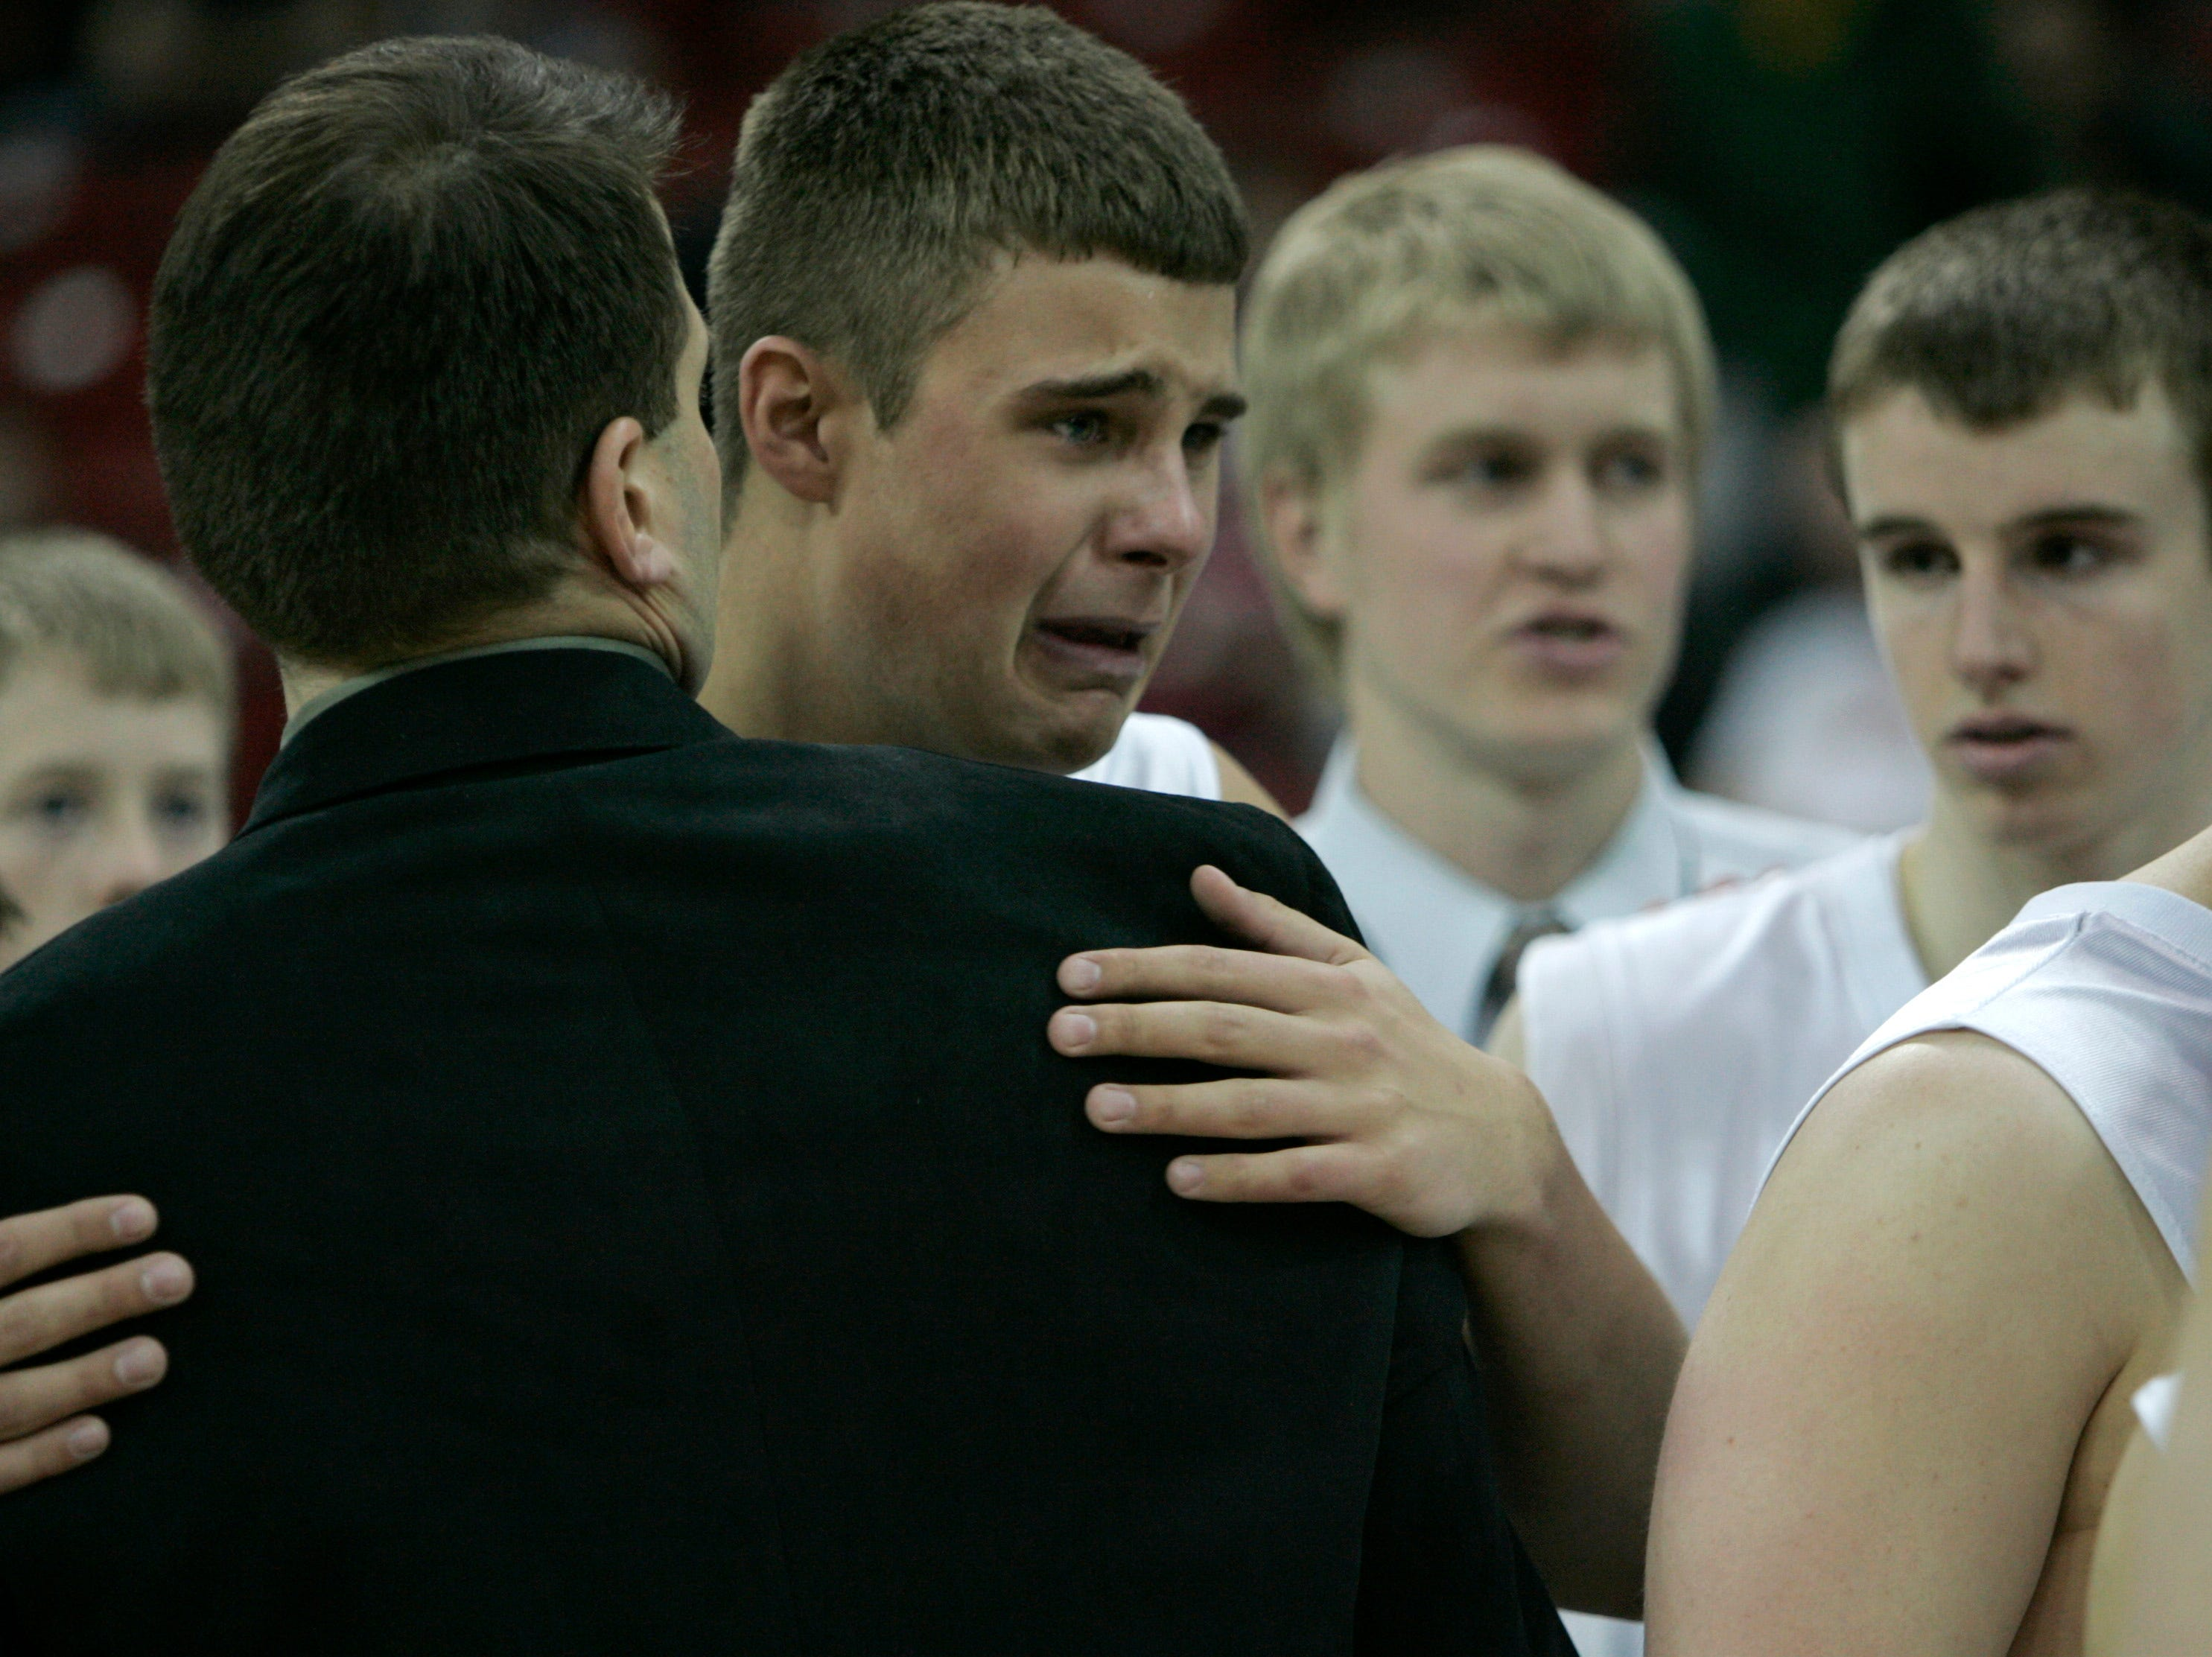 Port Washington Pirates' Jon DeBoer hugs head coach John Bunyan  after losing 52-46 to the Monroe Cheesemakers' in the Boys WIAA State Basketball Tournament Divisioon 2 Finals, being held at the Kohl Center in Madison. March 17, 2007.